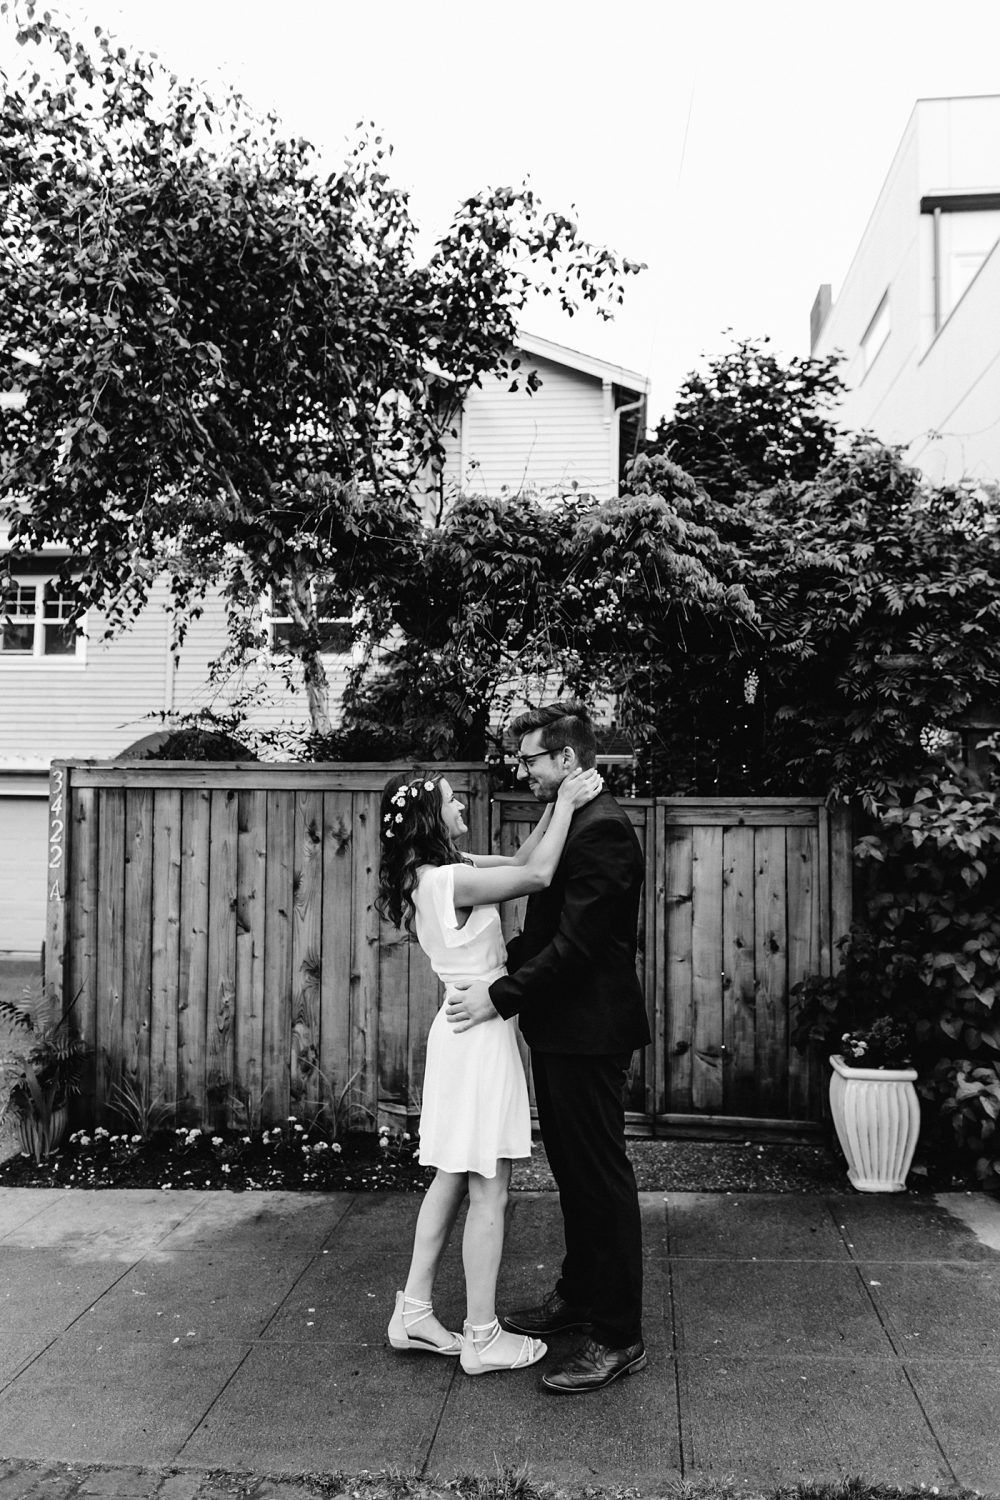 backyard wedding vibes in a pacific northwest home